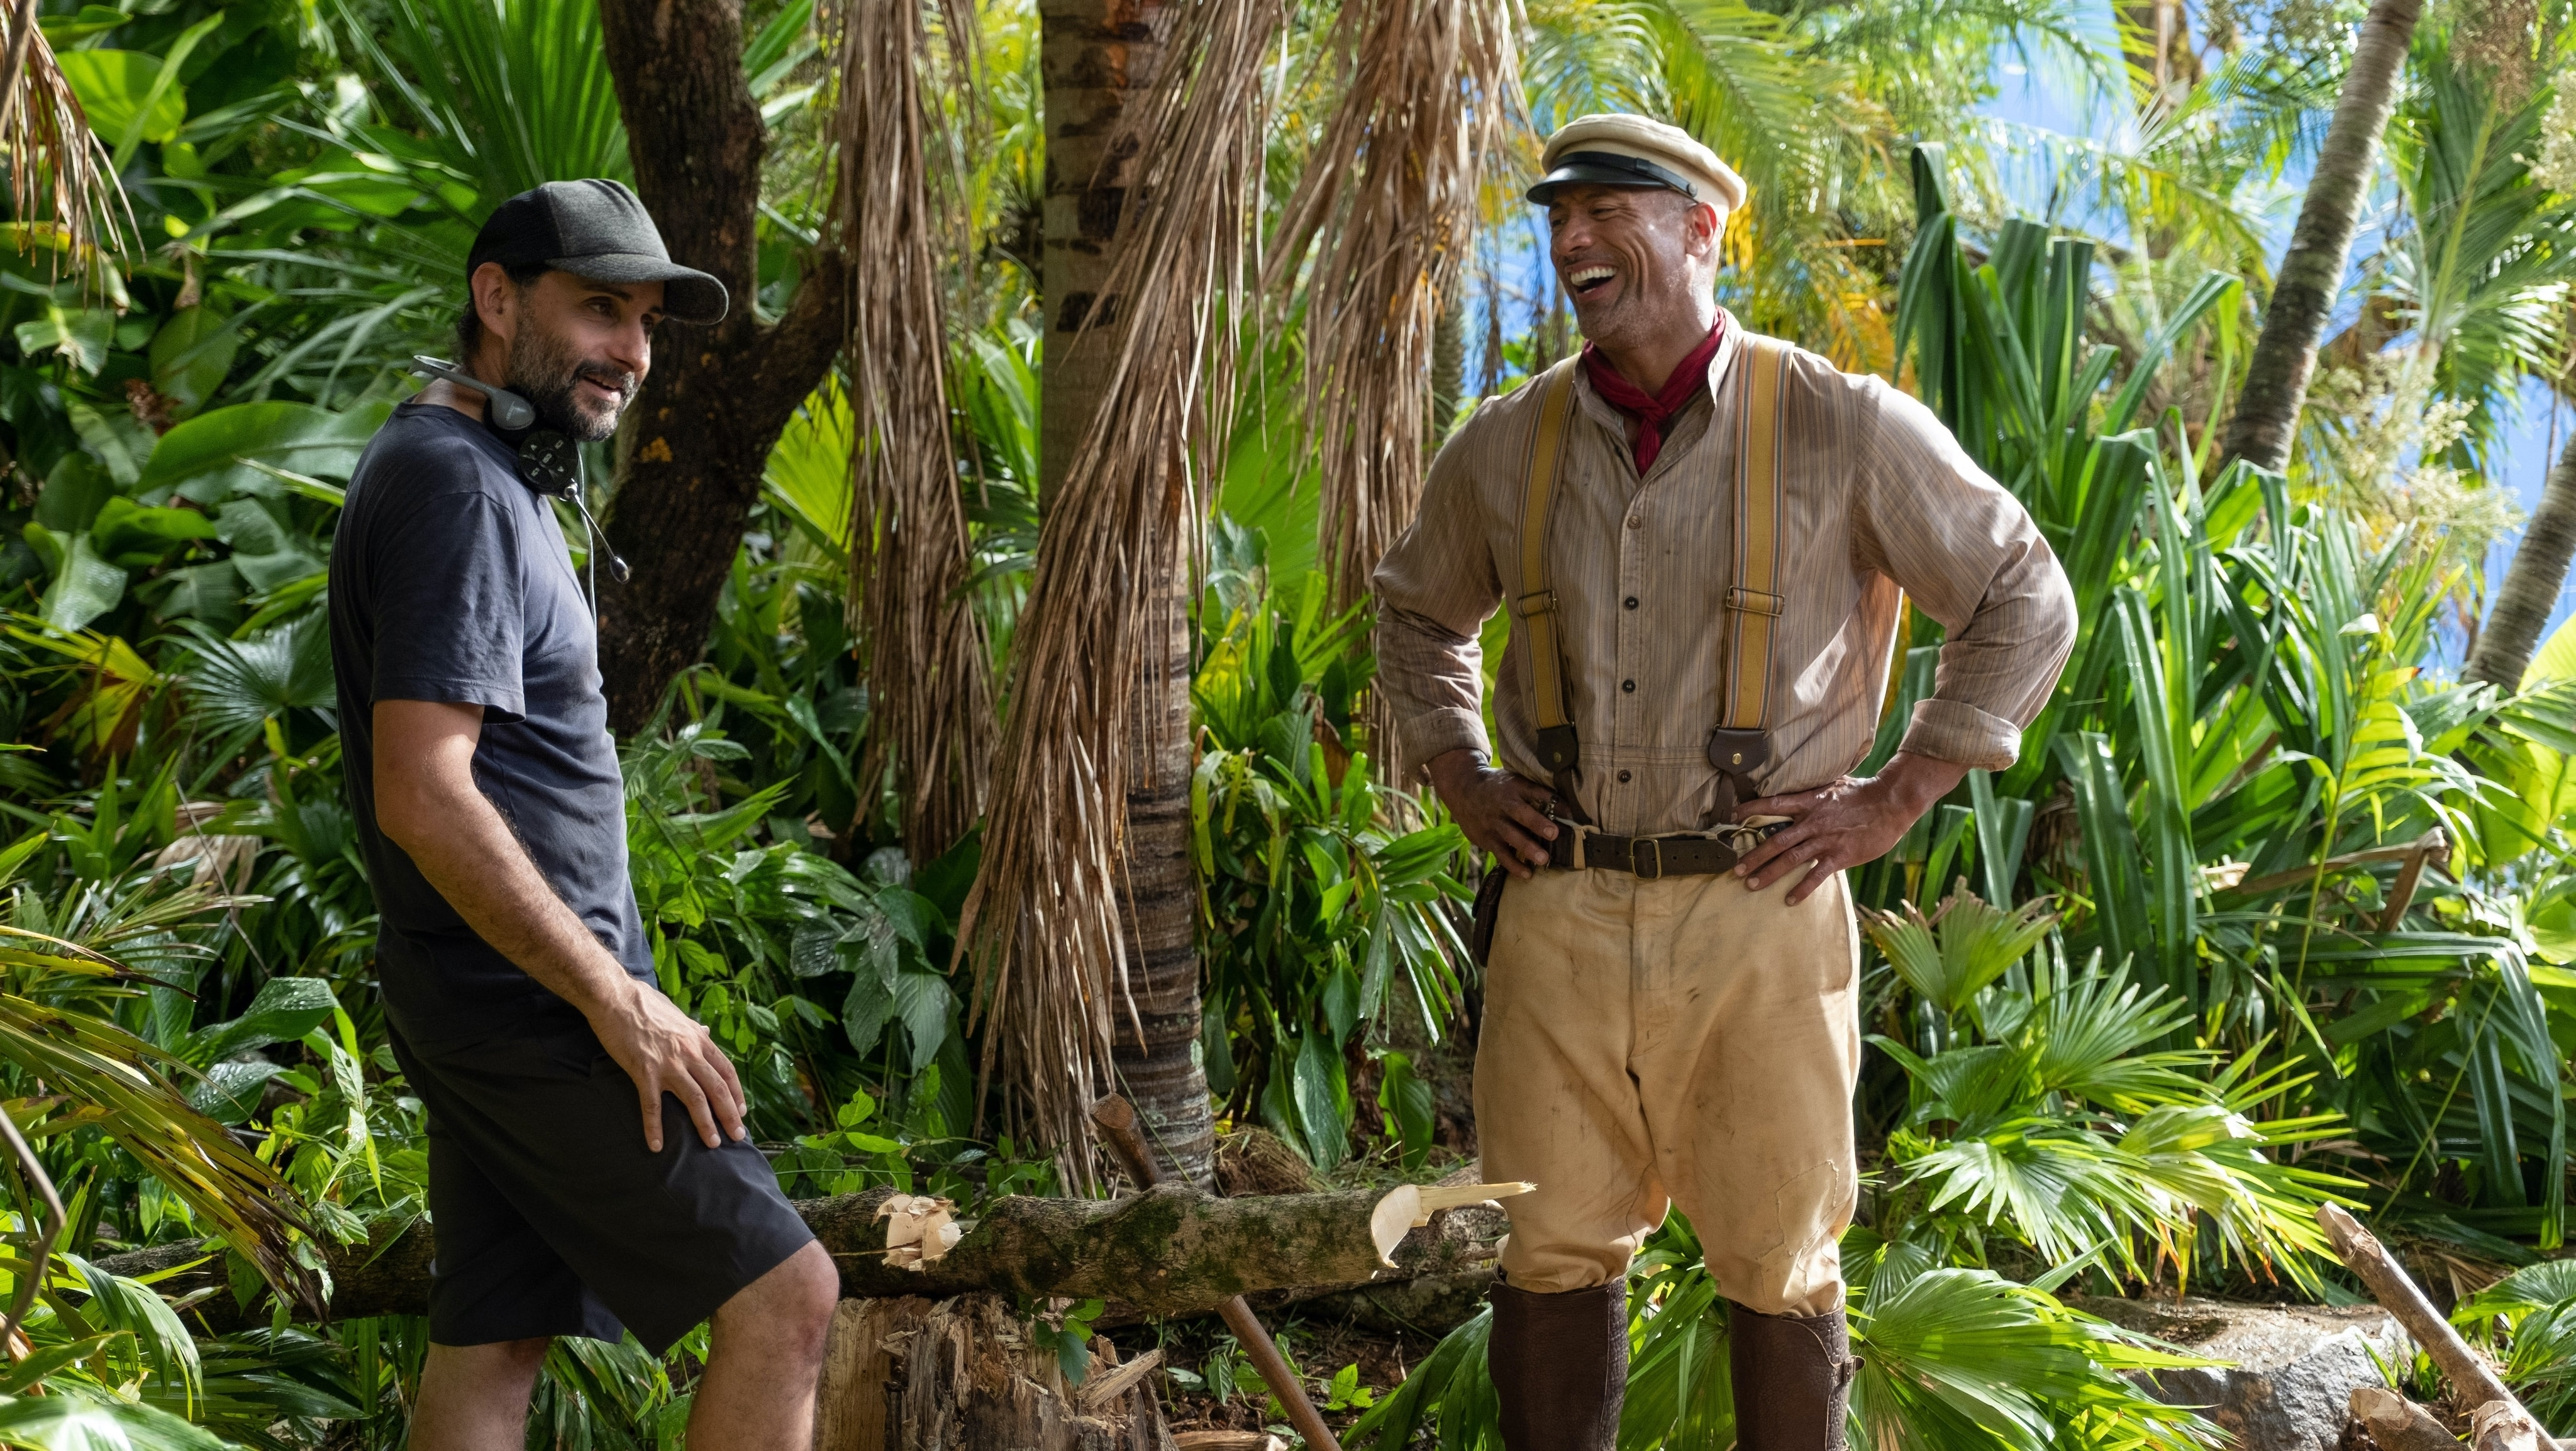 Director Jaume Collet-Serra and Dwayne Johnson on the set of Disney's JUNGLE CRUISE. Photo by Frank Masi. © 2021 Disney Enterprises, Inc. All Rights Reserved.